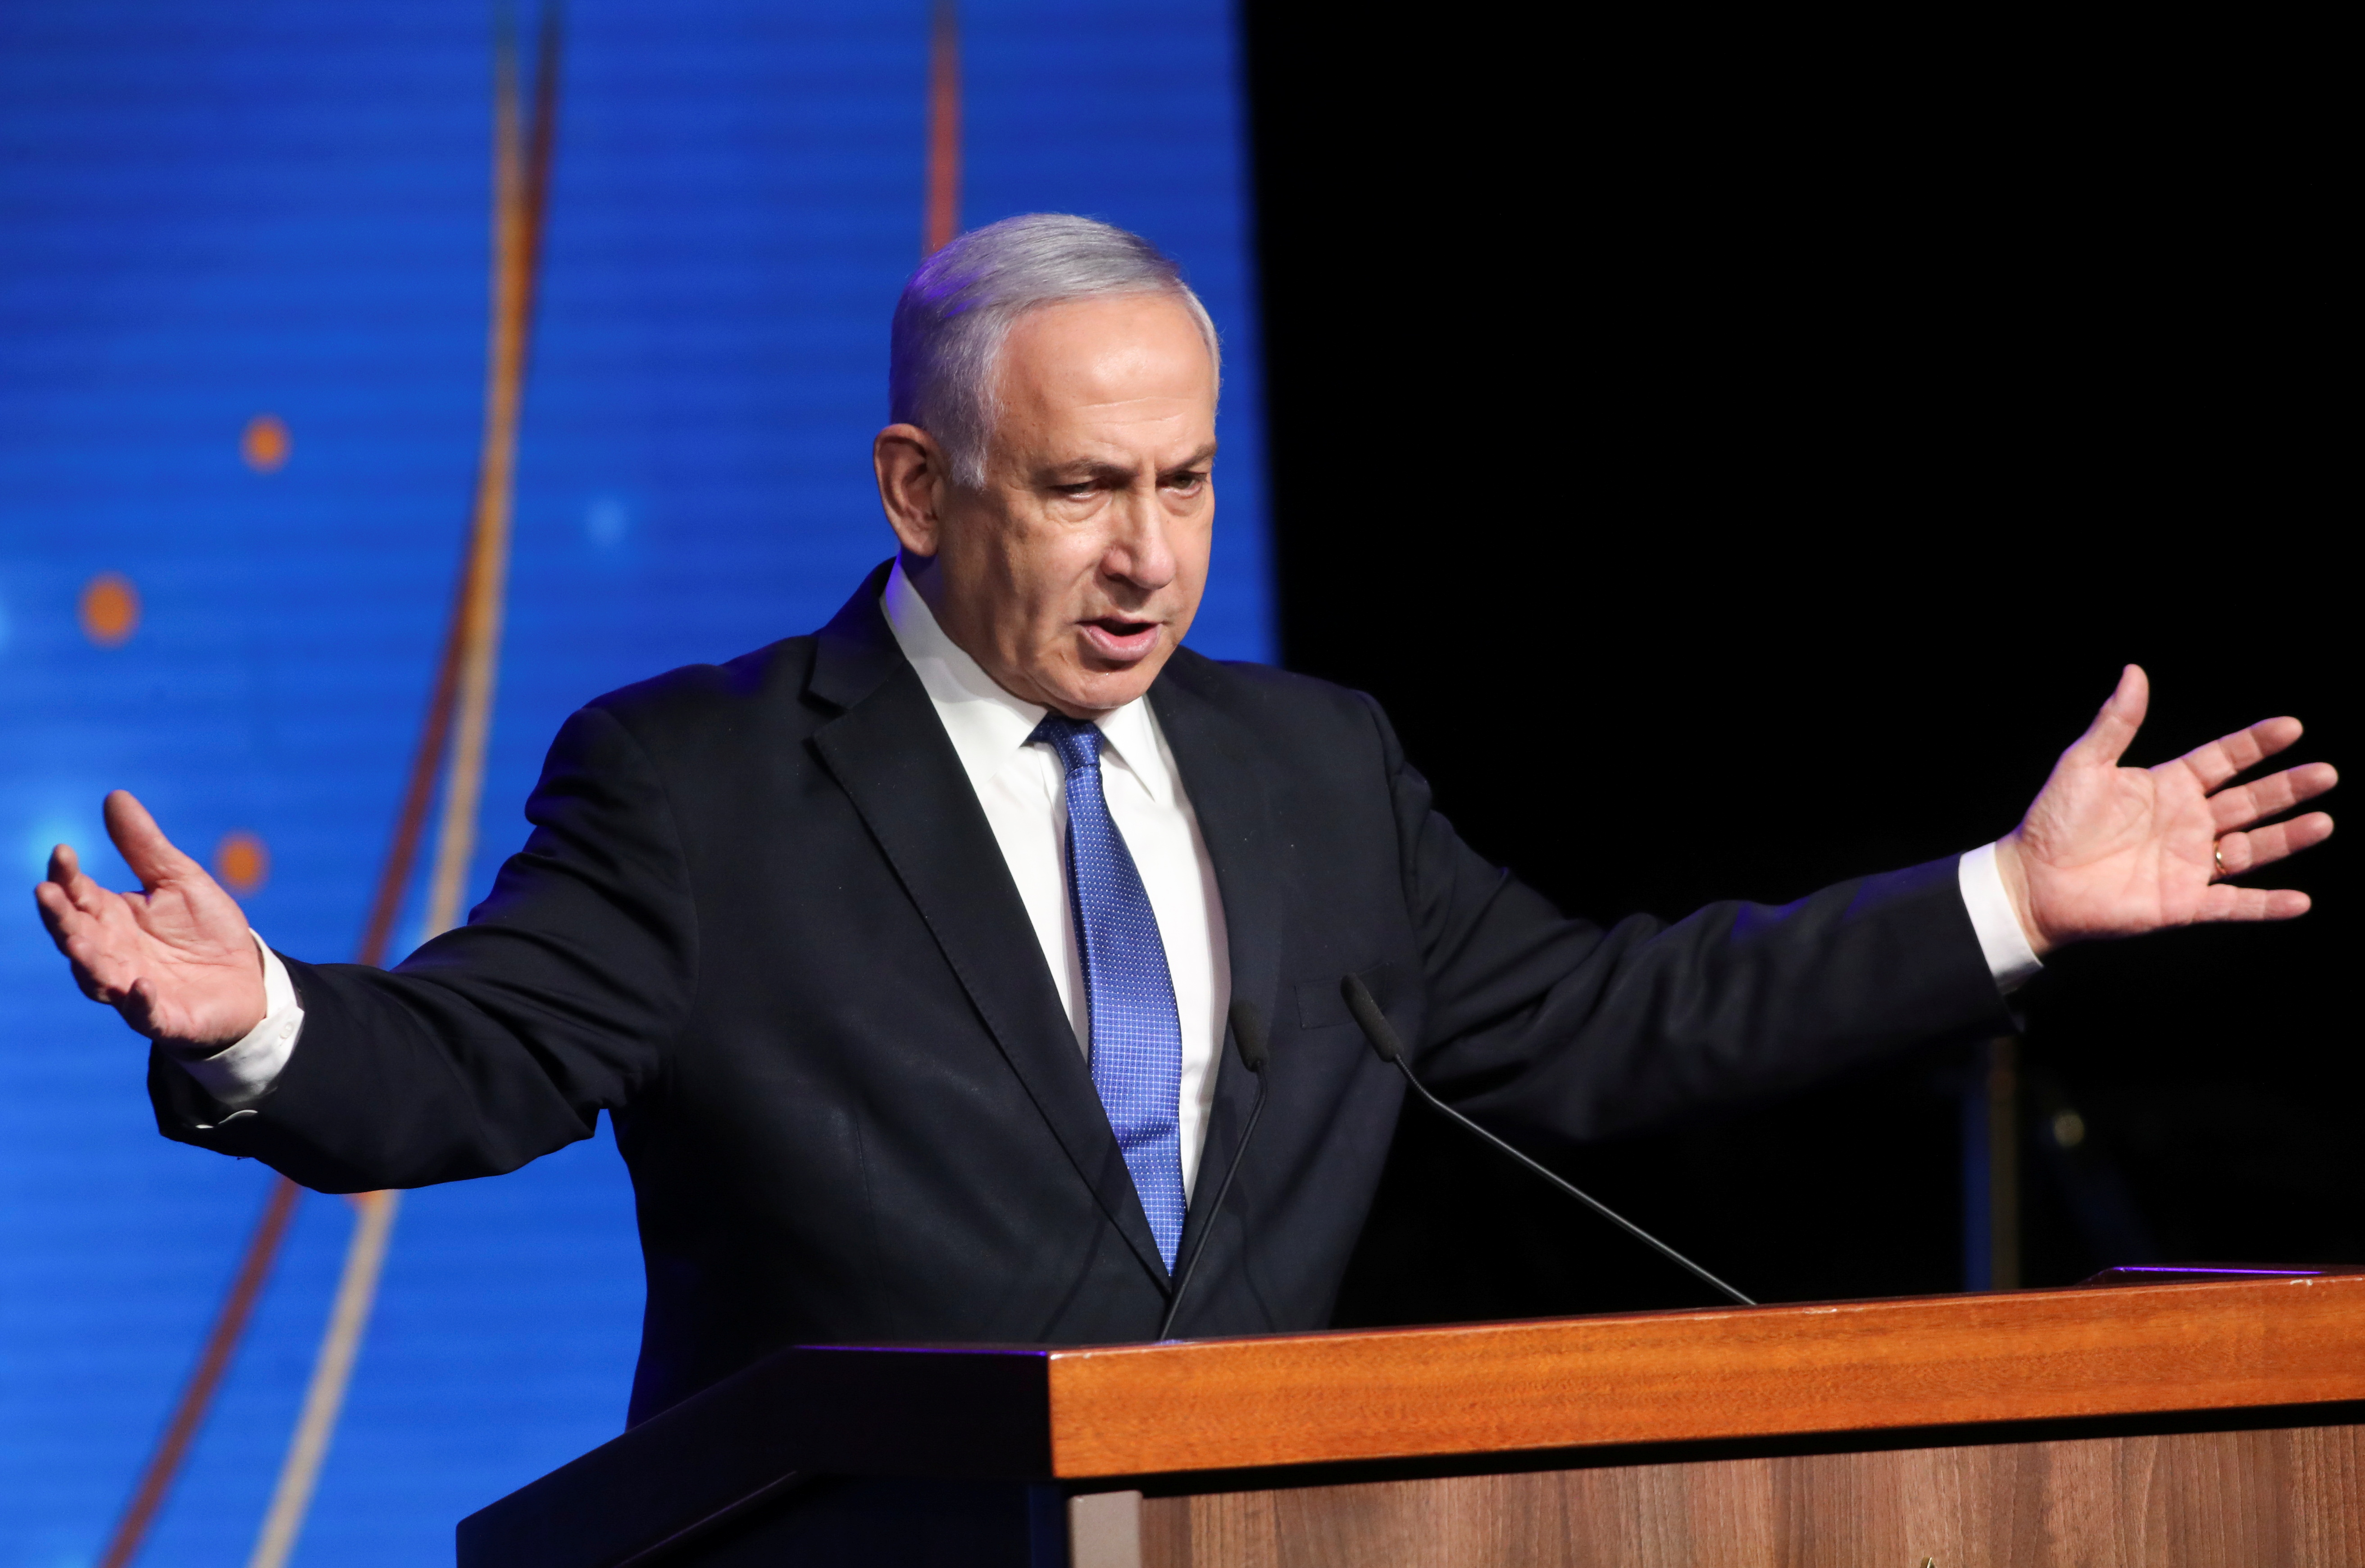 Israeli Prime Minister Benjamin Netanyahu speaks during a ceremony to show appreciation to the health sector for their contribution to the fight against the coronavirus disease (COVID-19), in Jerusalem June 6, 2021. REUTERS/Ronen Zvulun